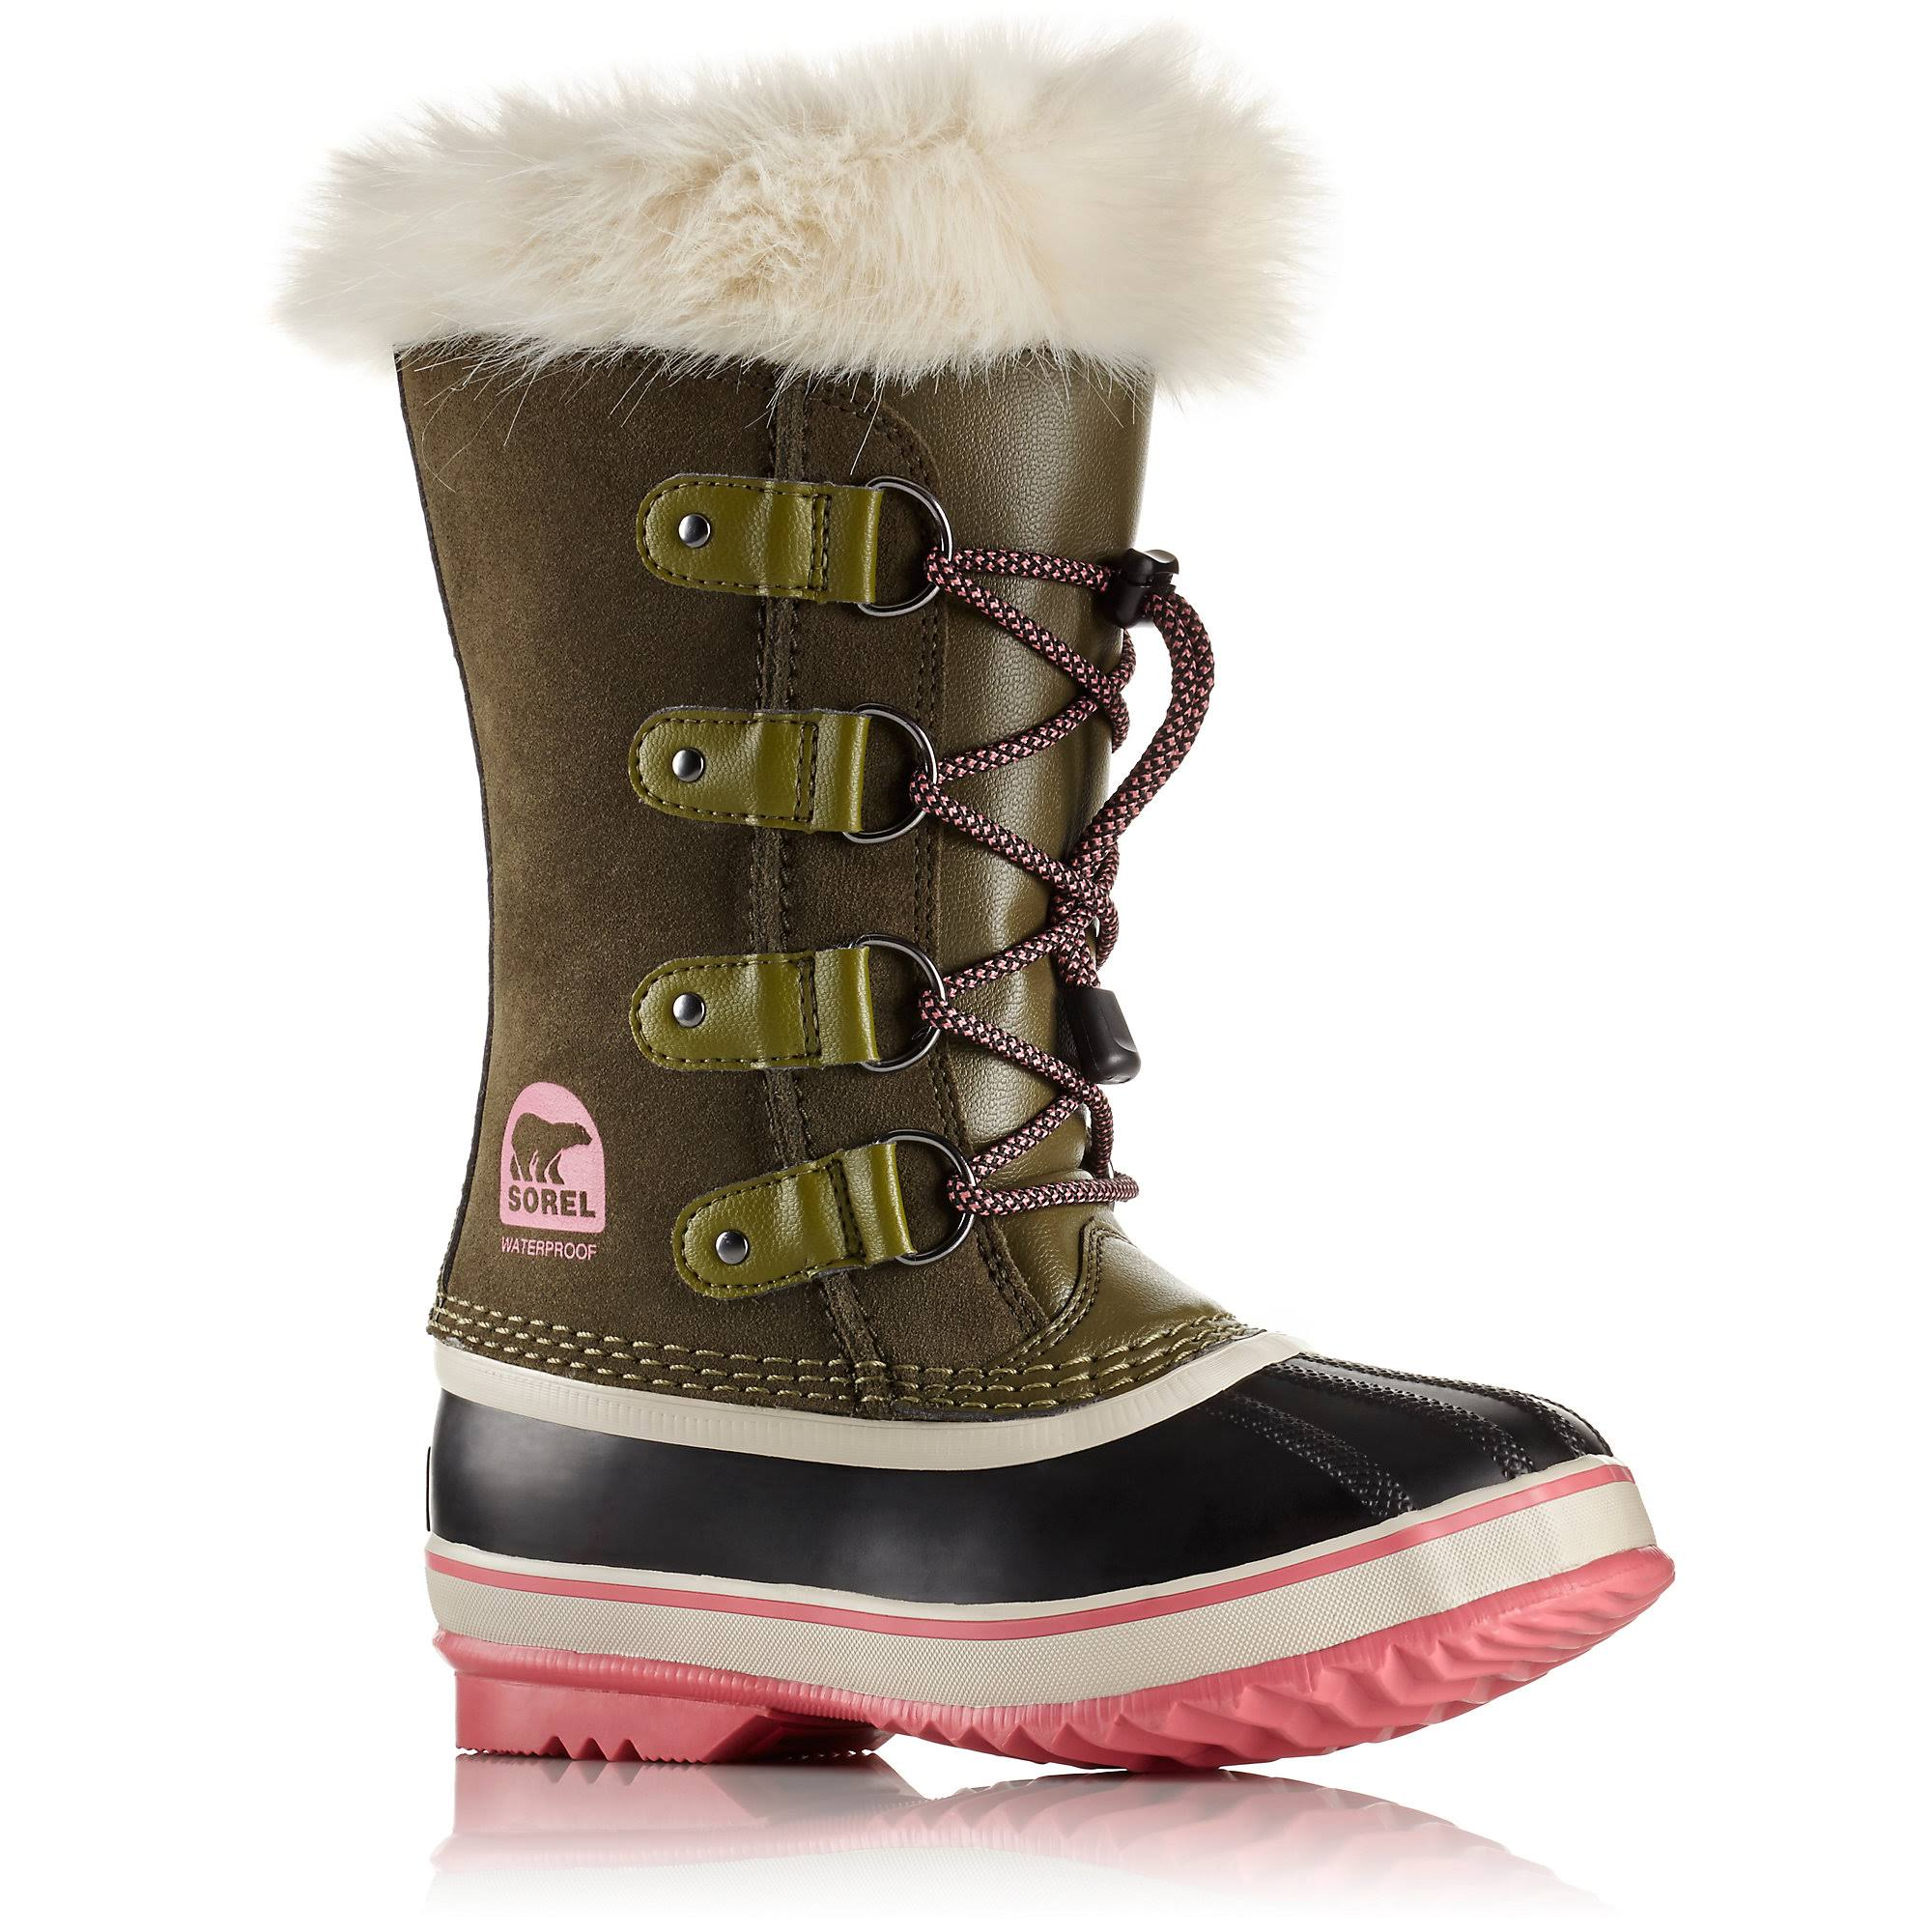 Sorel Youth Joan of Arctic Boot - 6 - Nori / Winter Rose